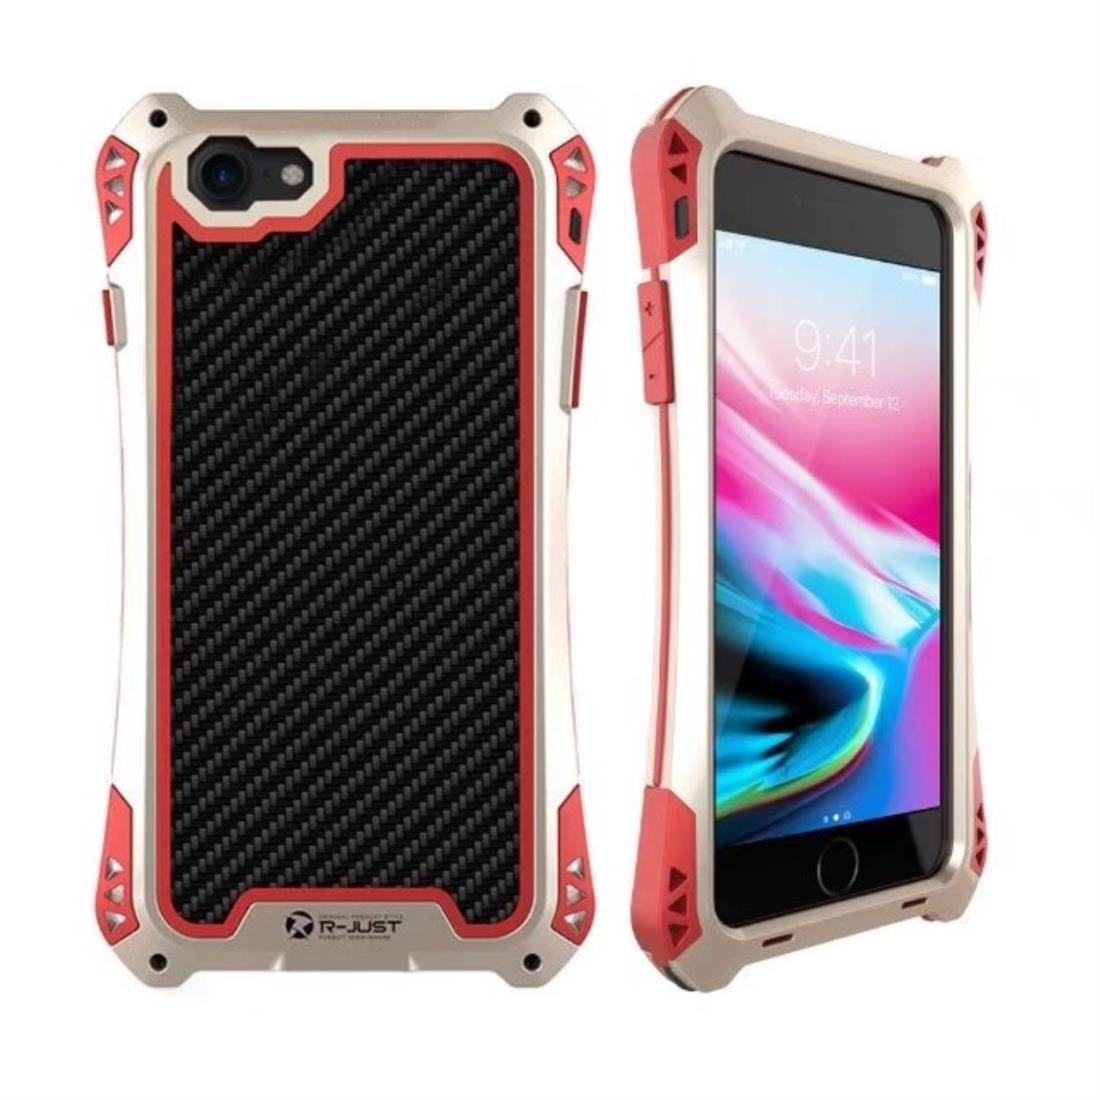 Water Resistant Metal Armor Bumper, Heavy Duty Military Shockproof Hybrid Aluminum Alloy Carbon Fiber Case Cover with Gorilla Tempered Glass for Apple (Gold&Red, for iPhone 7) by R-just